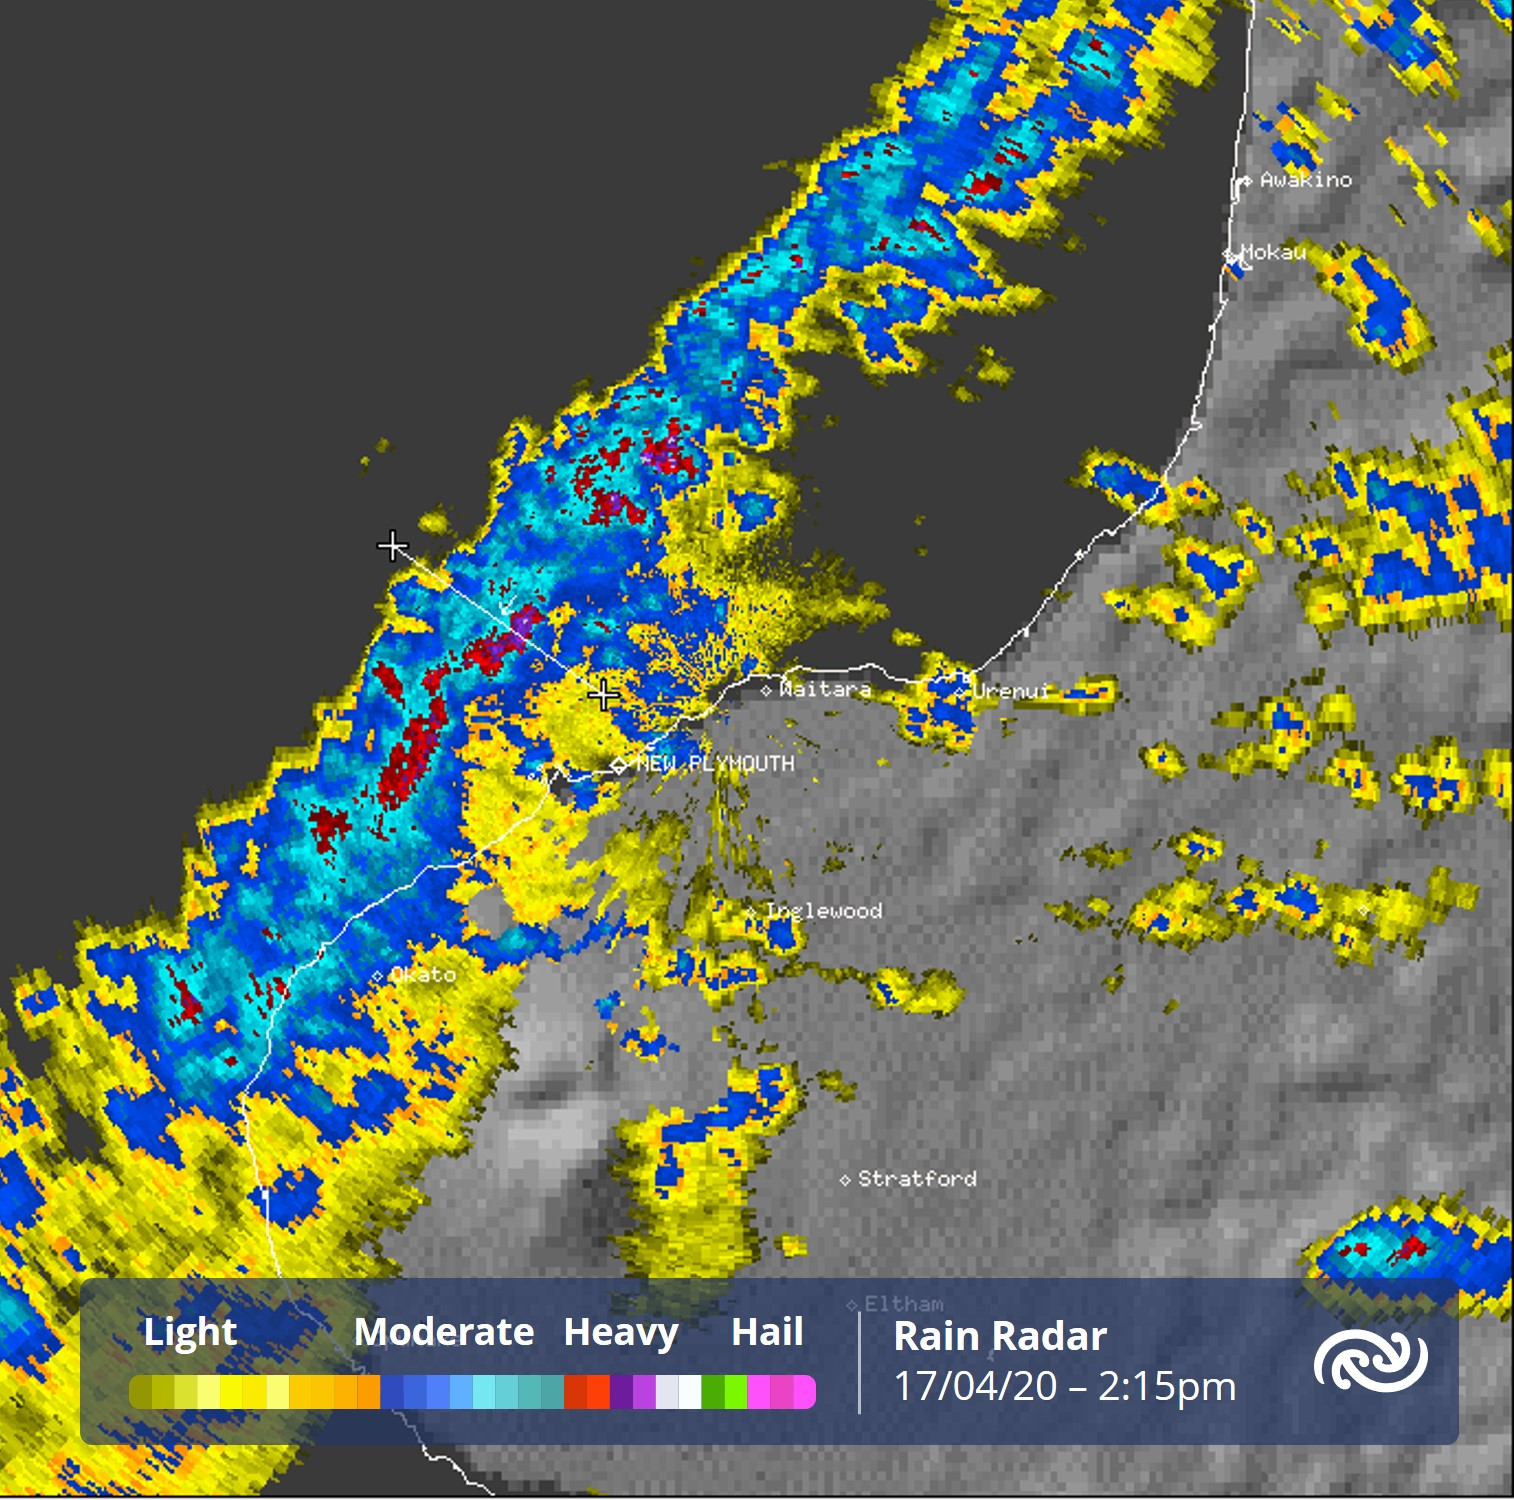 The first rain radar image shows a line of weakening  which just passed over New Plymouth. The second image shows a cross-section of this line - a tool our forecasters will be using a lot today to ascertain more info about the nature and life cycle stage the  is in. ^AC https://t.co/aACqzb5x5d